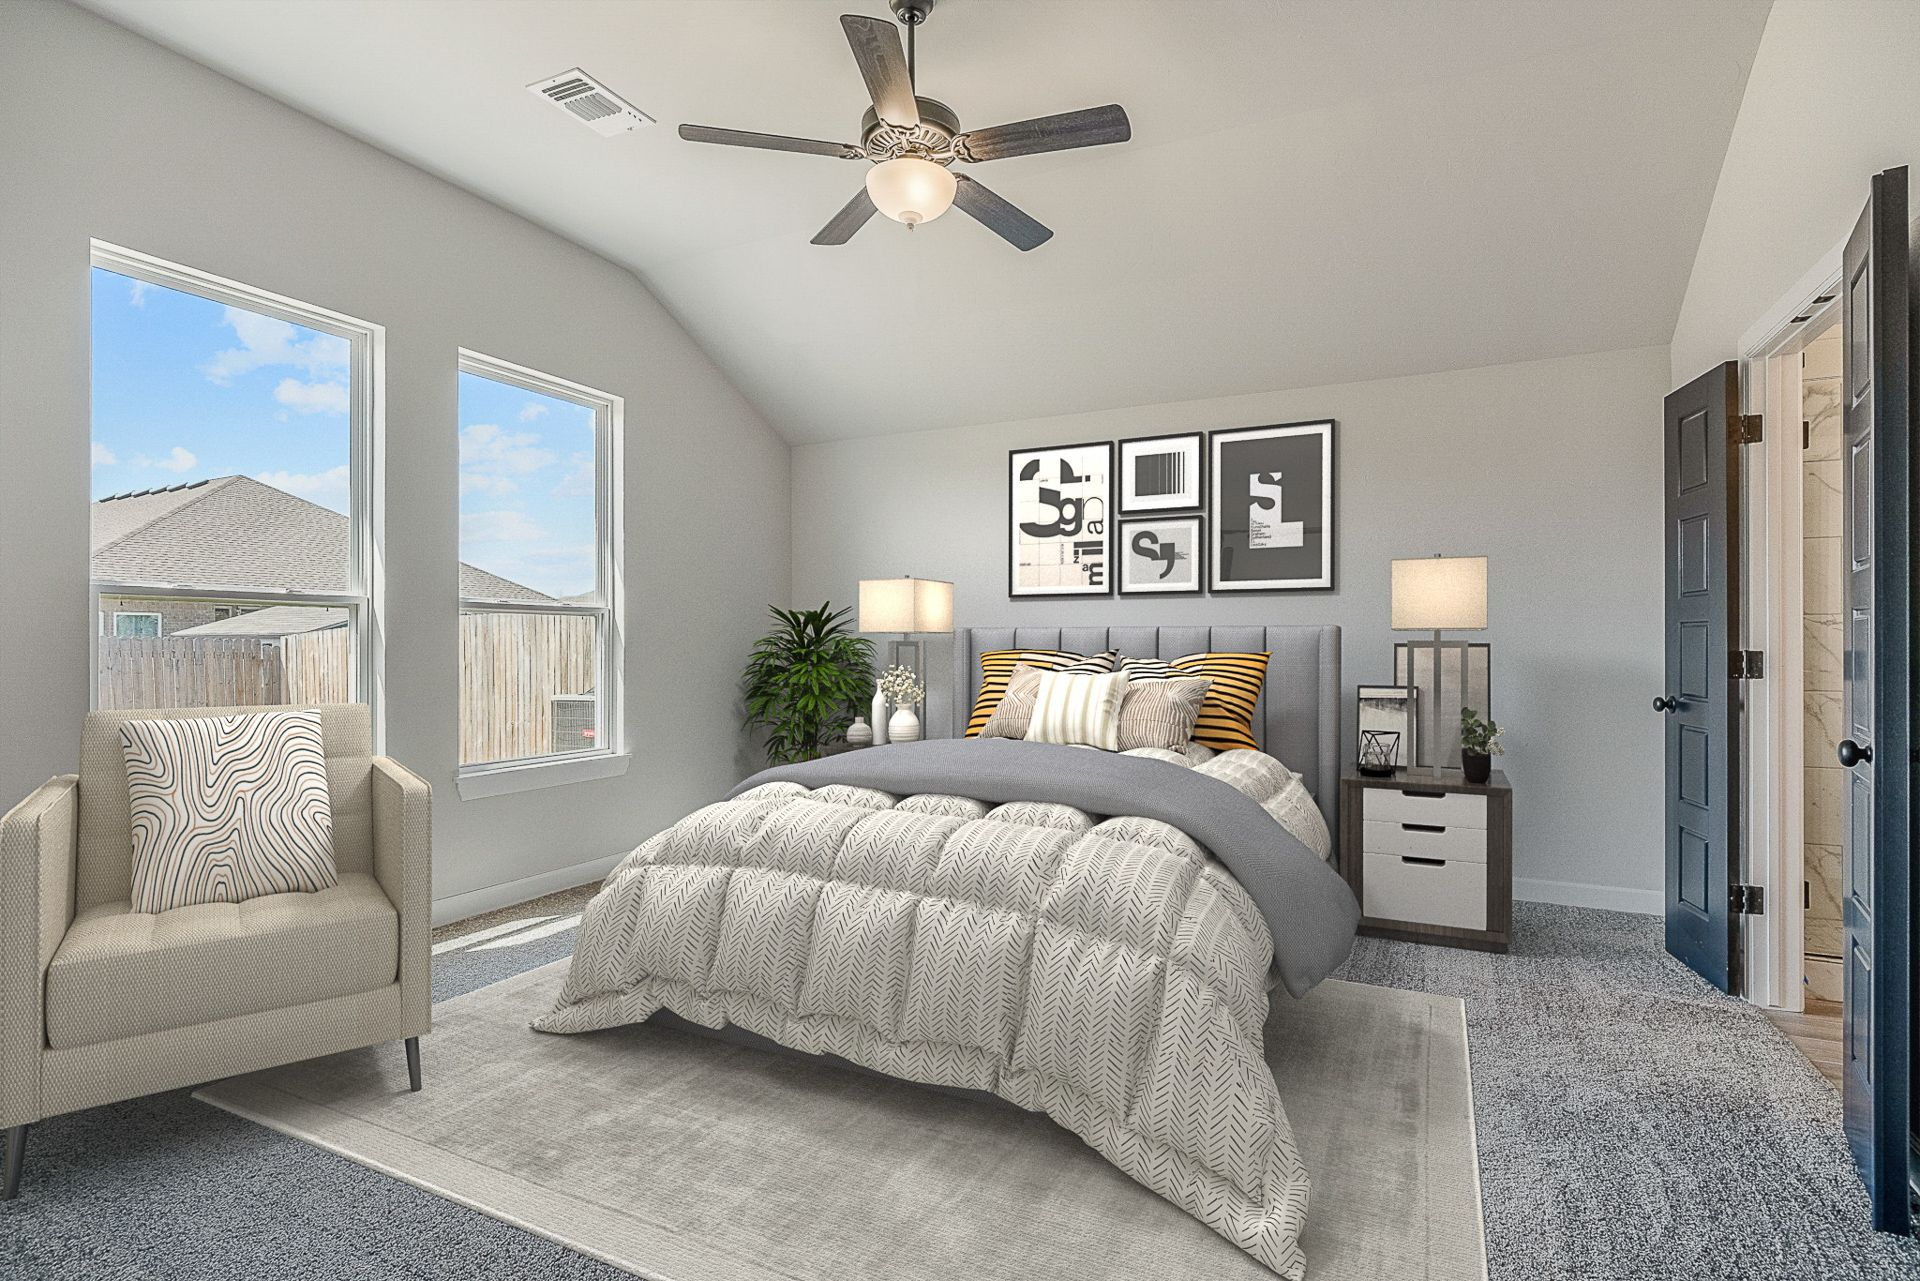 Bedroom featured in the Montgomery By Ideal Homes in Oklahoma City, OK